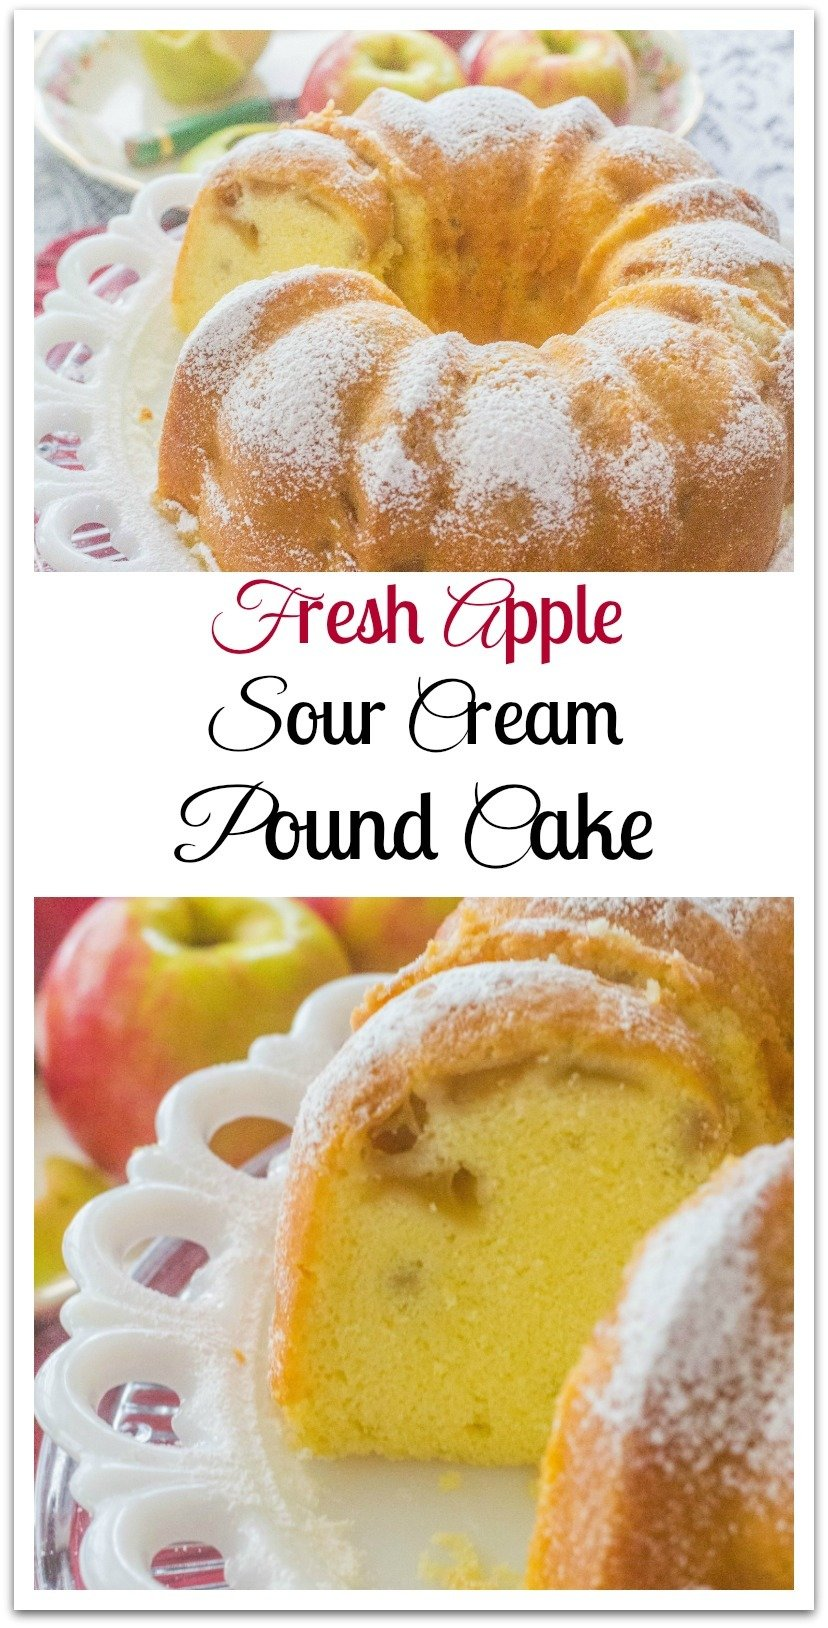 My mothers love of fresh apple cakes inspired me to take the best of my sour cream pound cake recipe and fresh apple pound cake and smush them together. #PoundCake #FreshApples